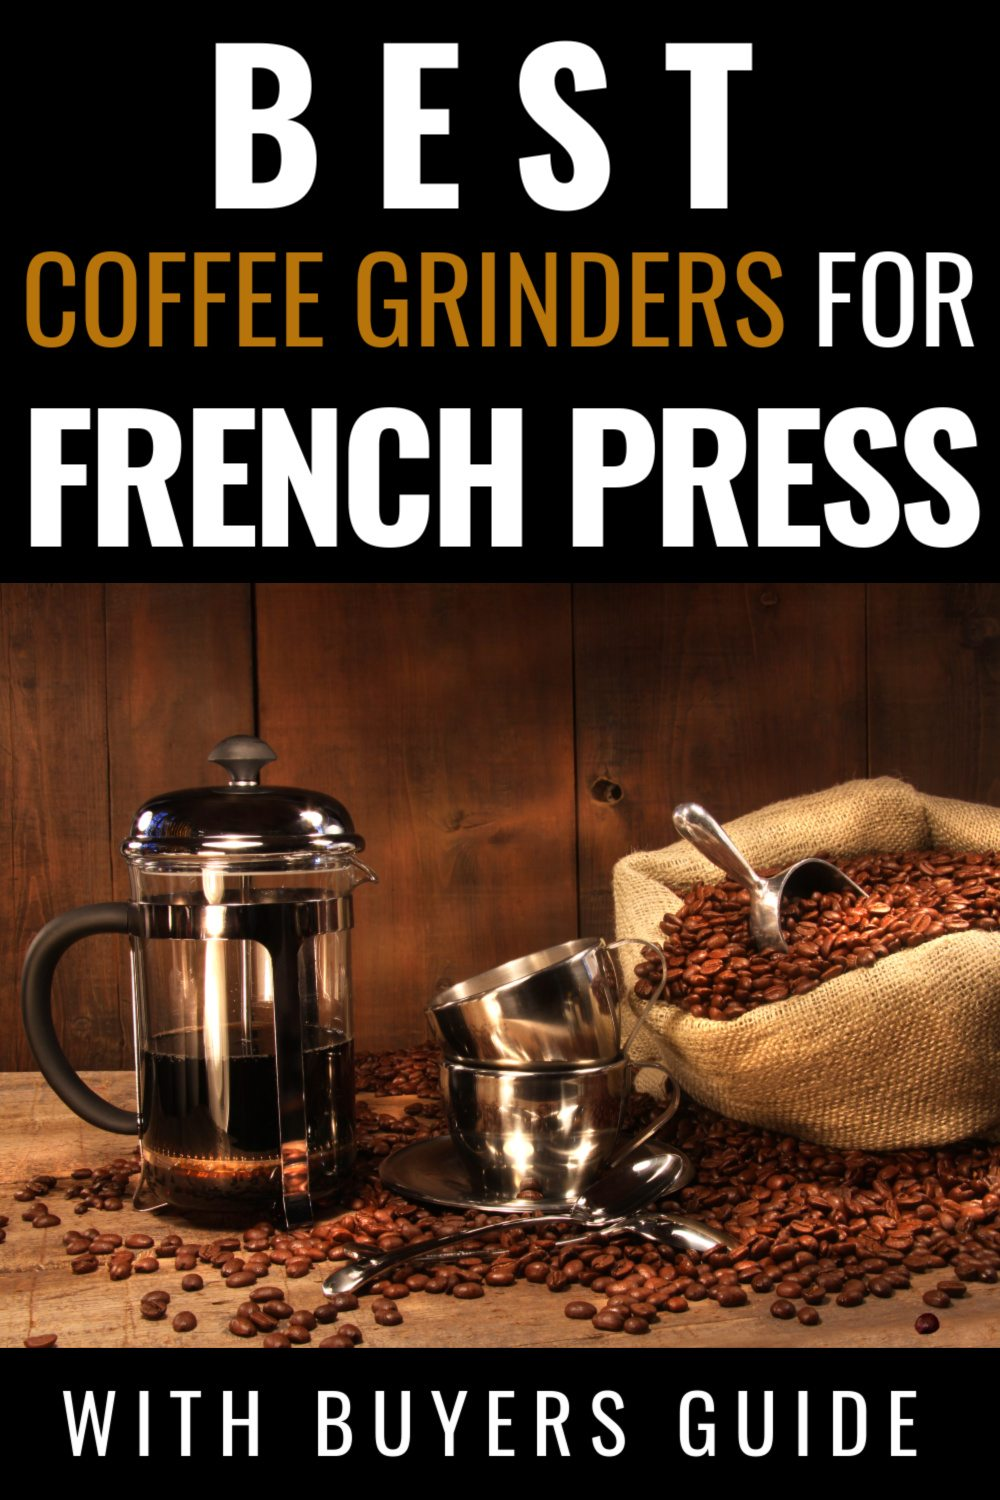 7 Best Coffee Grinders for French Press In 2020. Buyers Guide Included!